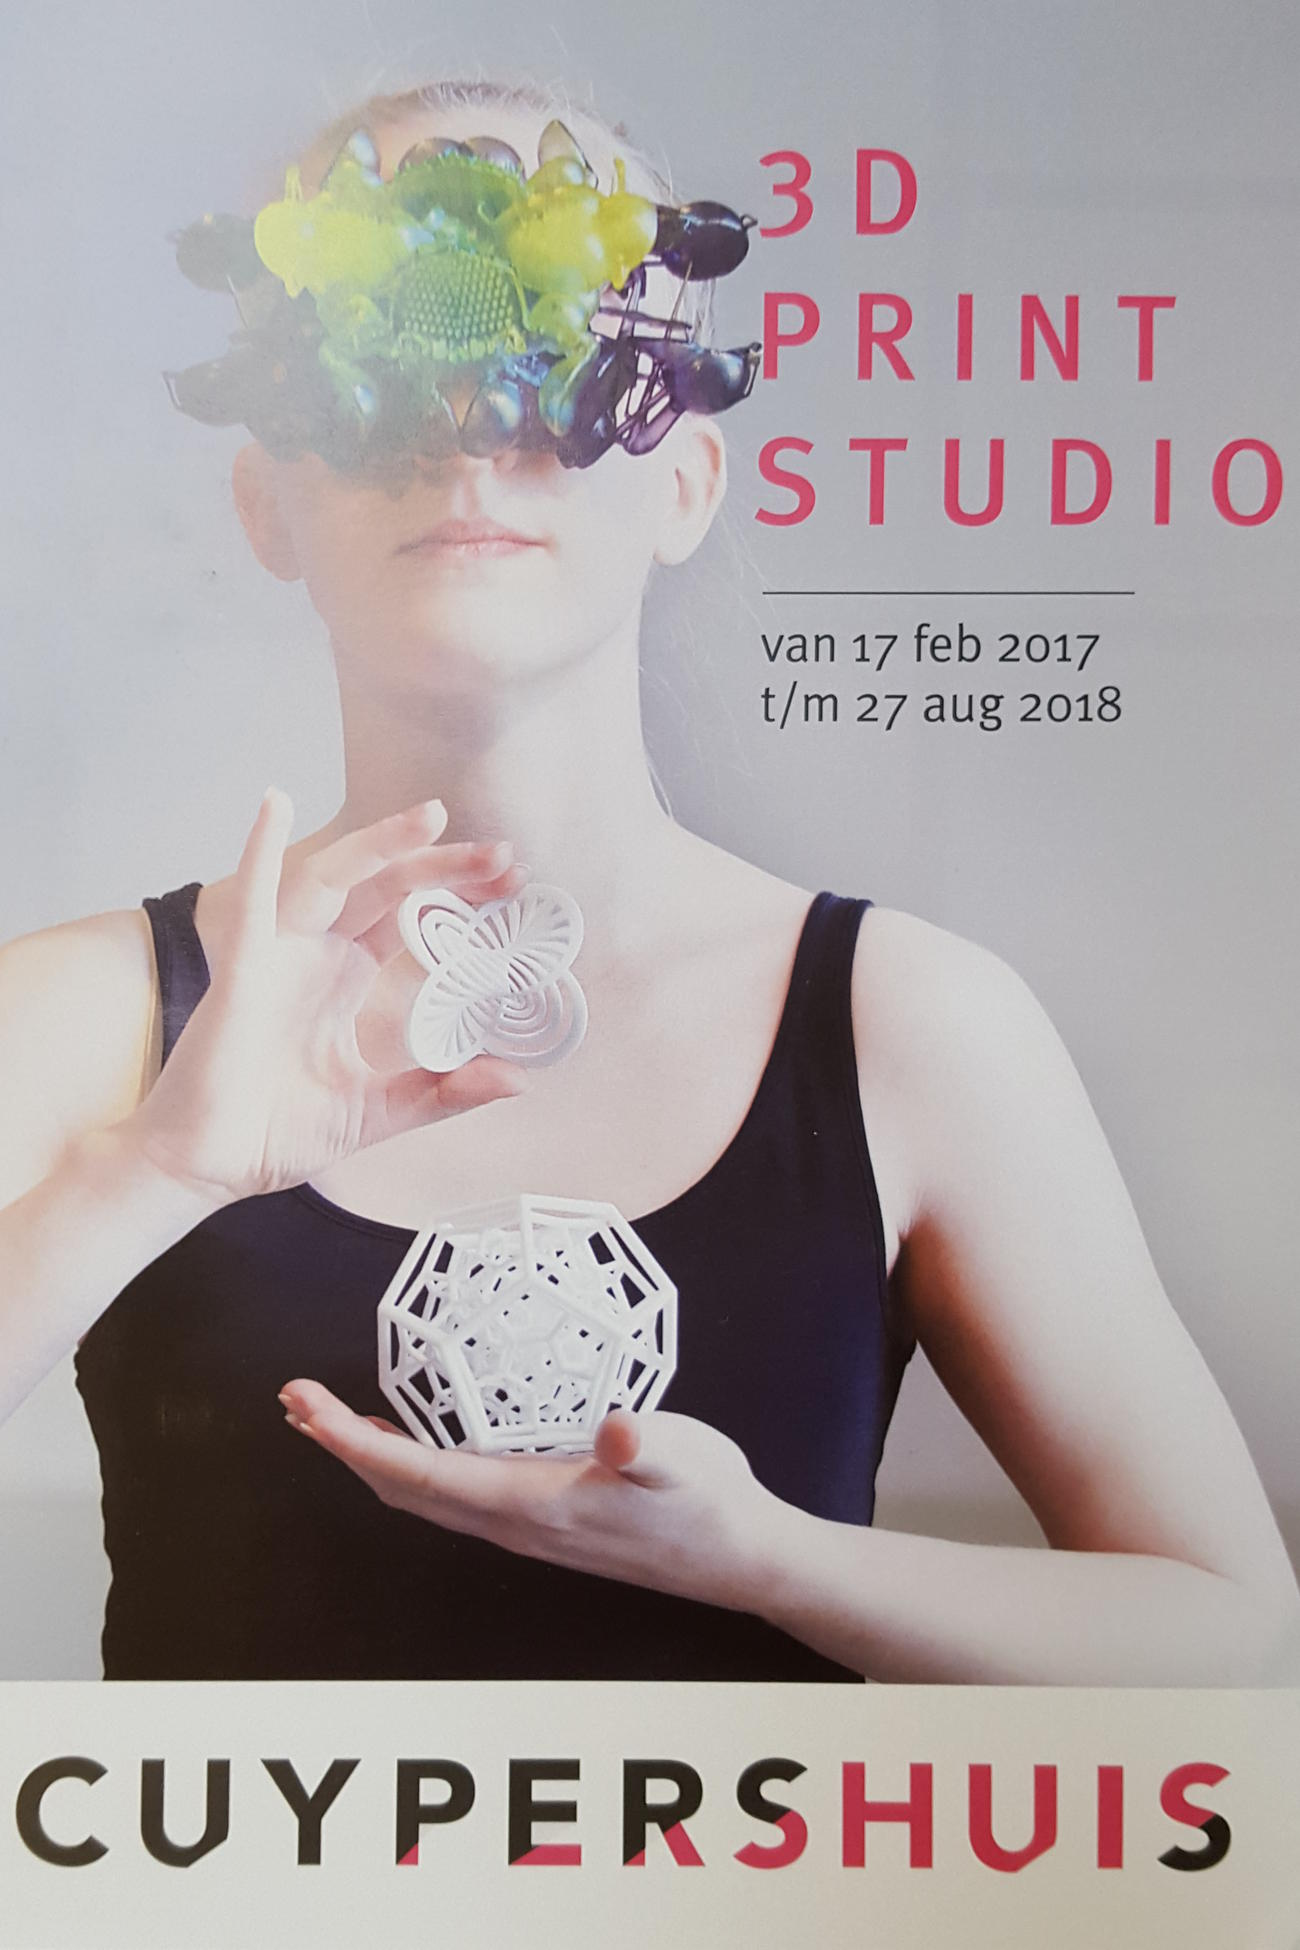 Invitation to exhibition at Cuyperhuis (Netherlands)